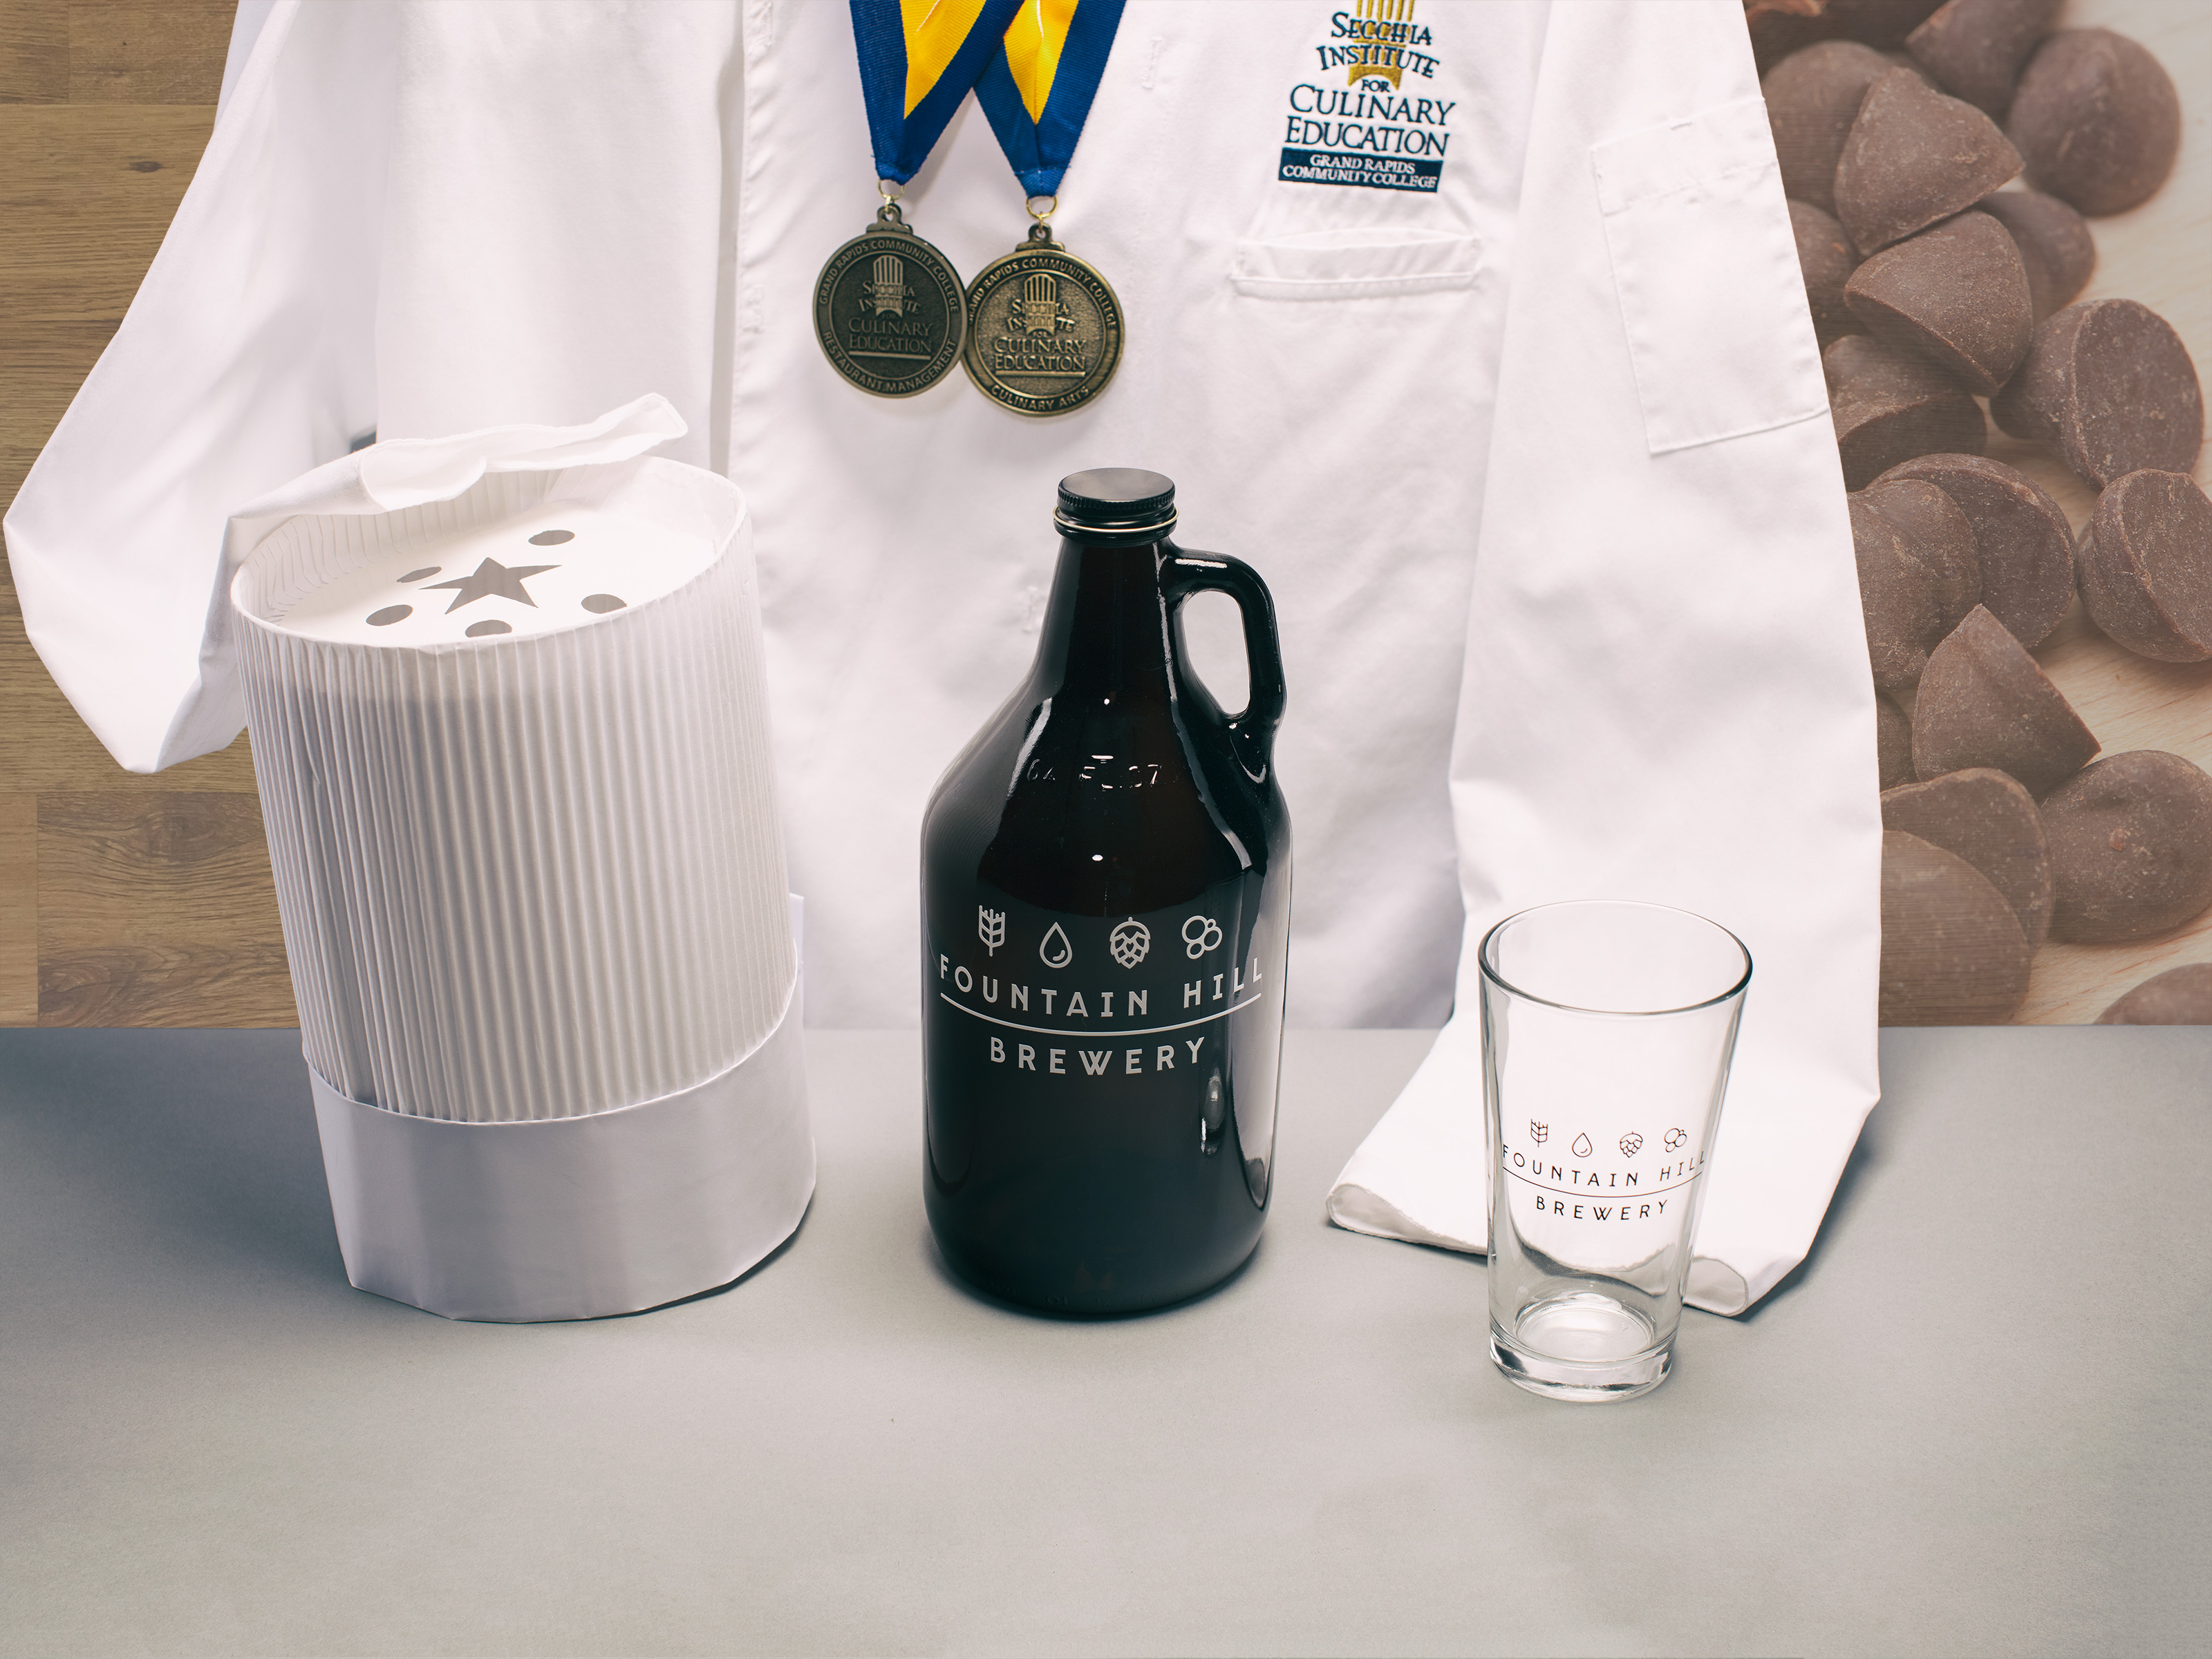 Culinary Arts, Hospitality, and Brewing Concentration Pathway